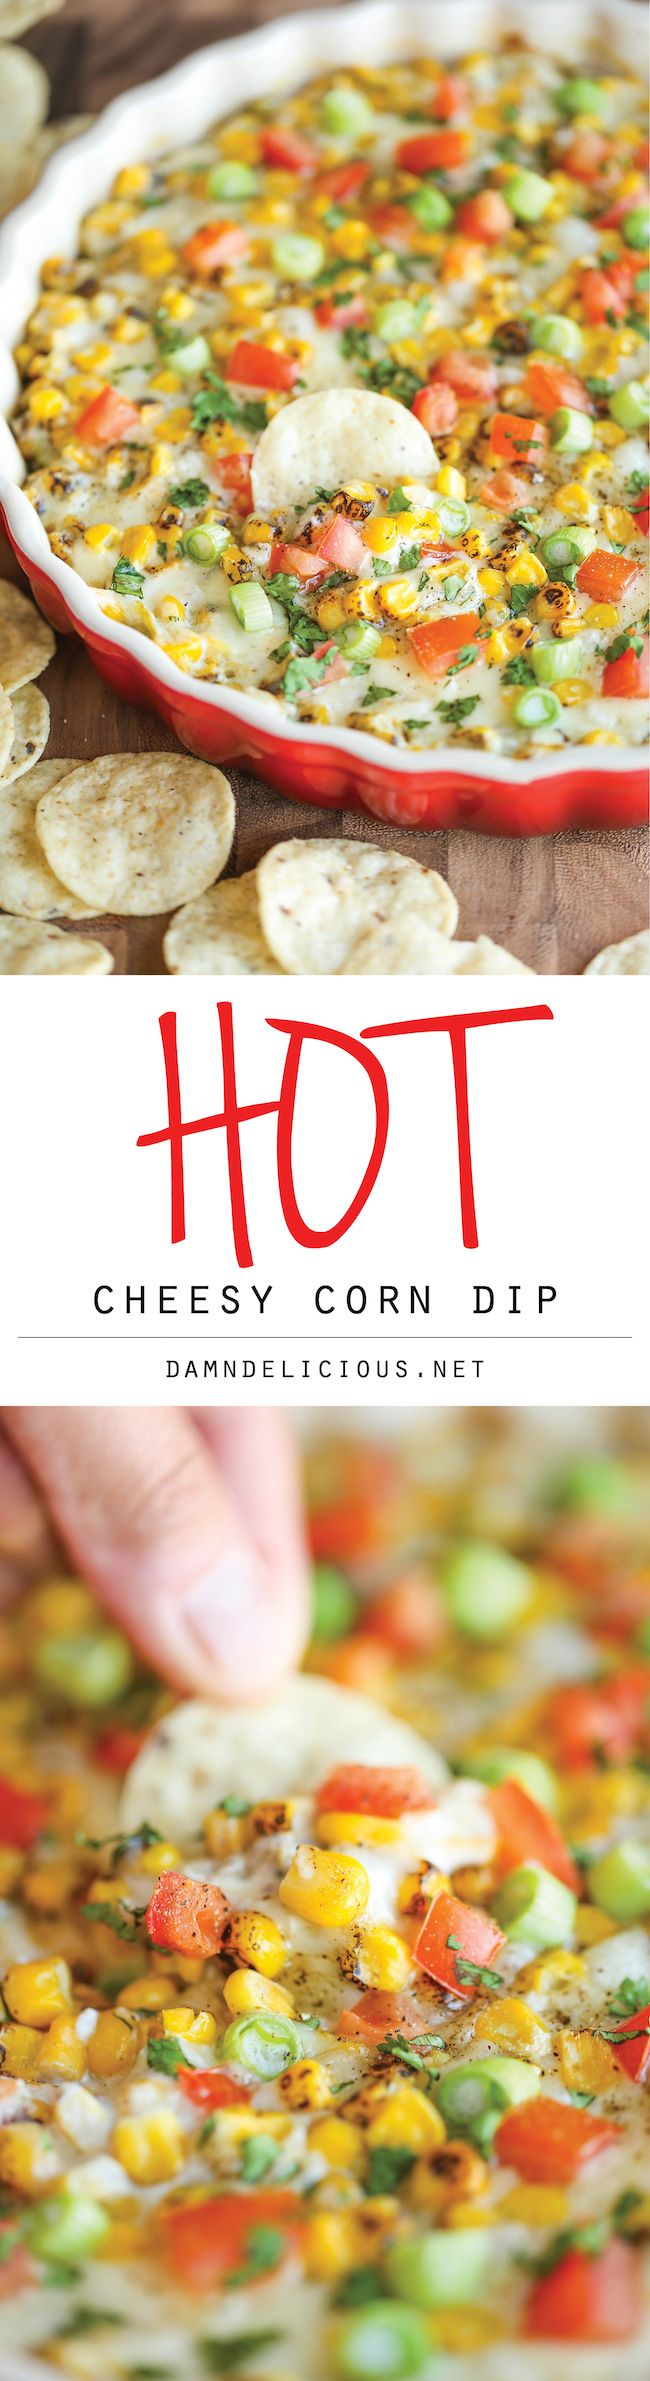 "Hot Cheesy Corn Dip - A super easy and amazingly creamy corn dip that comes together with just 10 min prep. And it's even made ""skinny"" with Greek yogurt!"